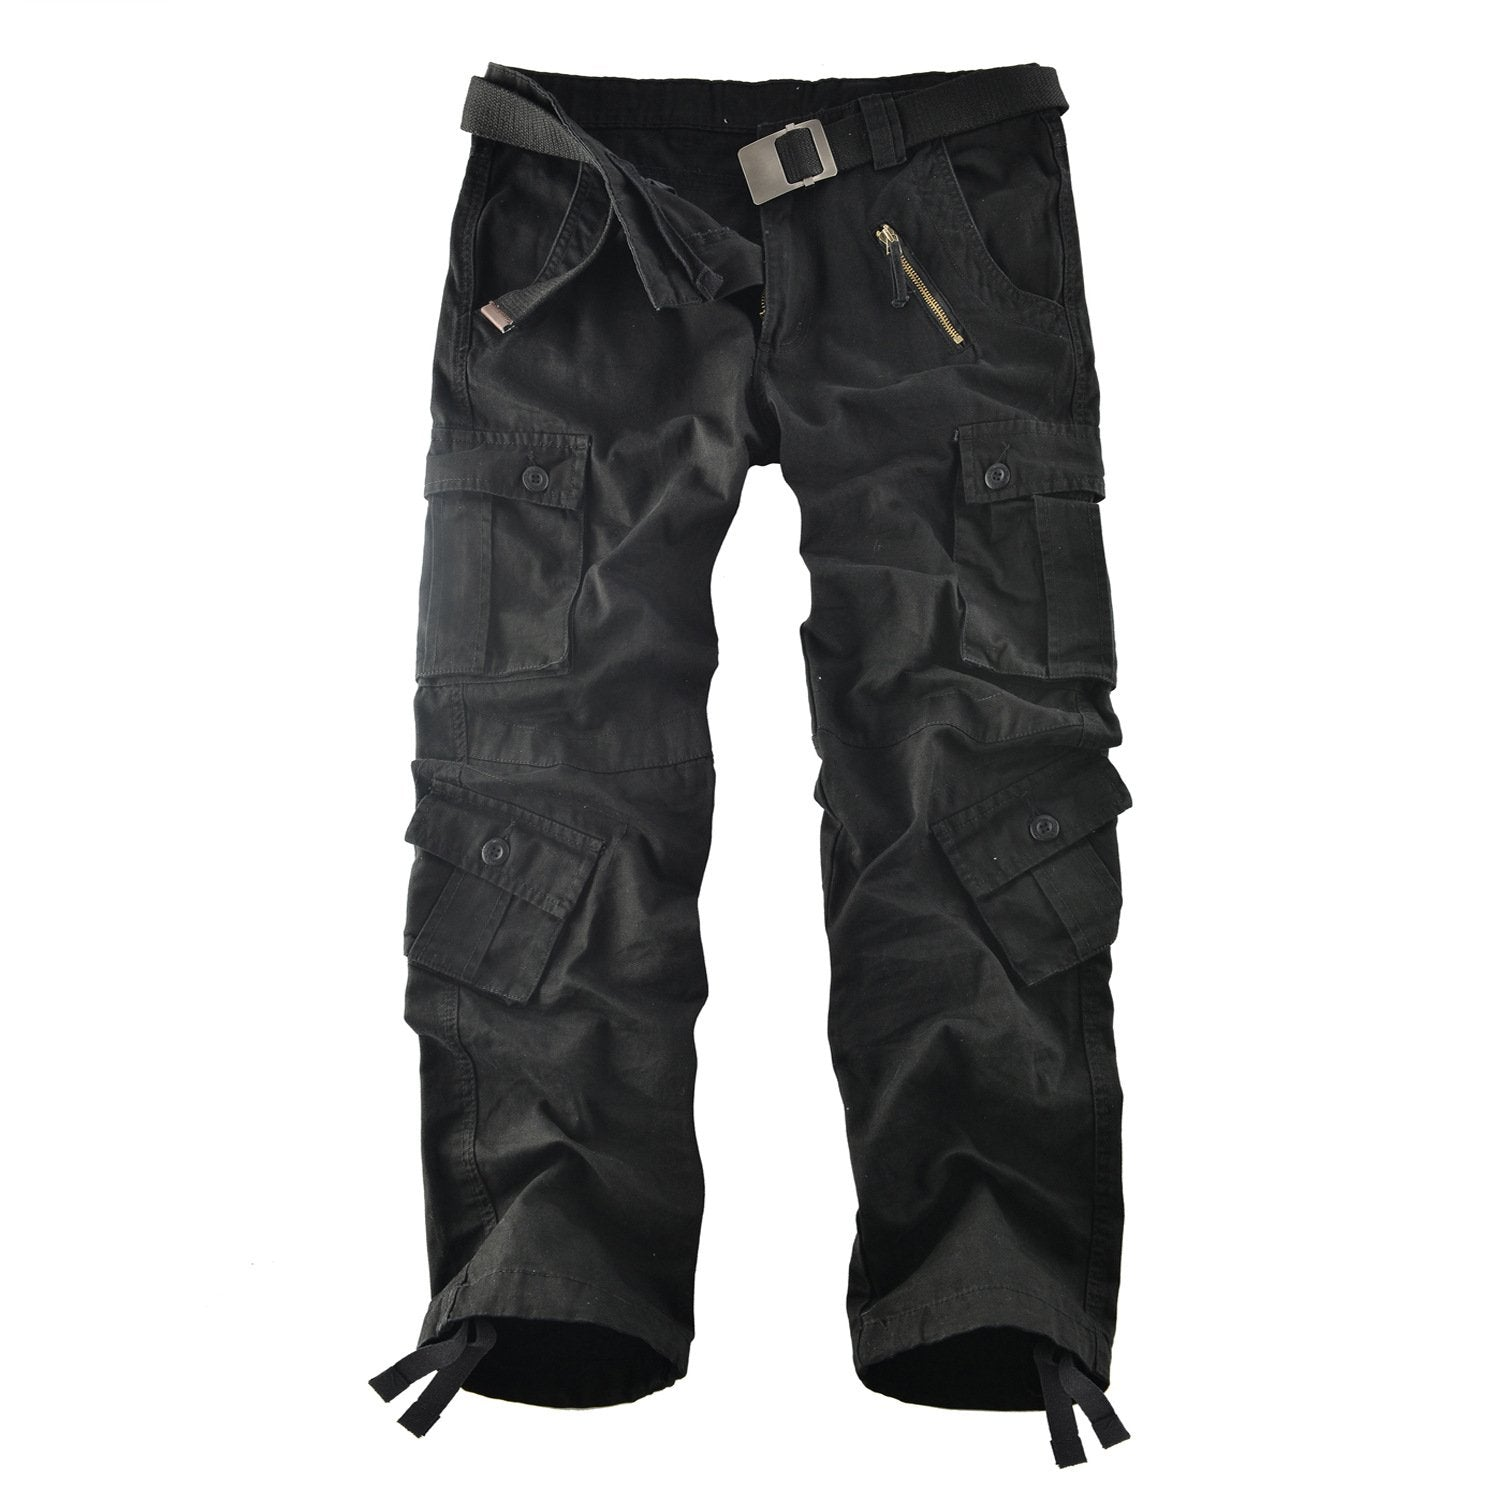 Camouflage pants trousers outdoor sports casual pants